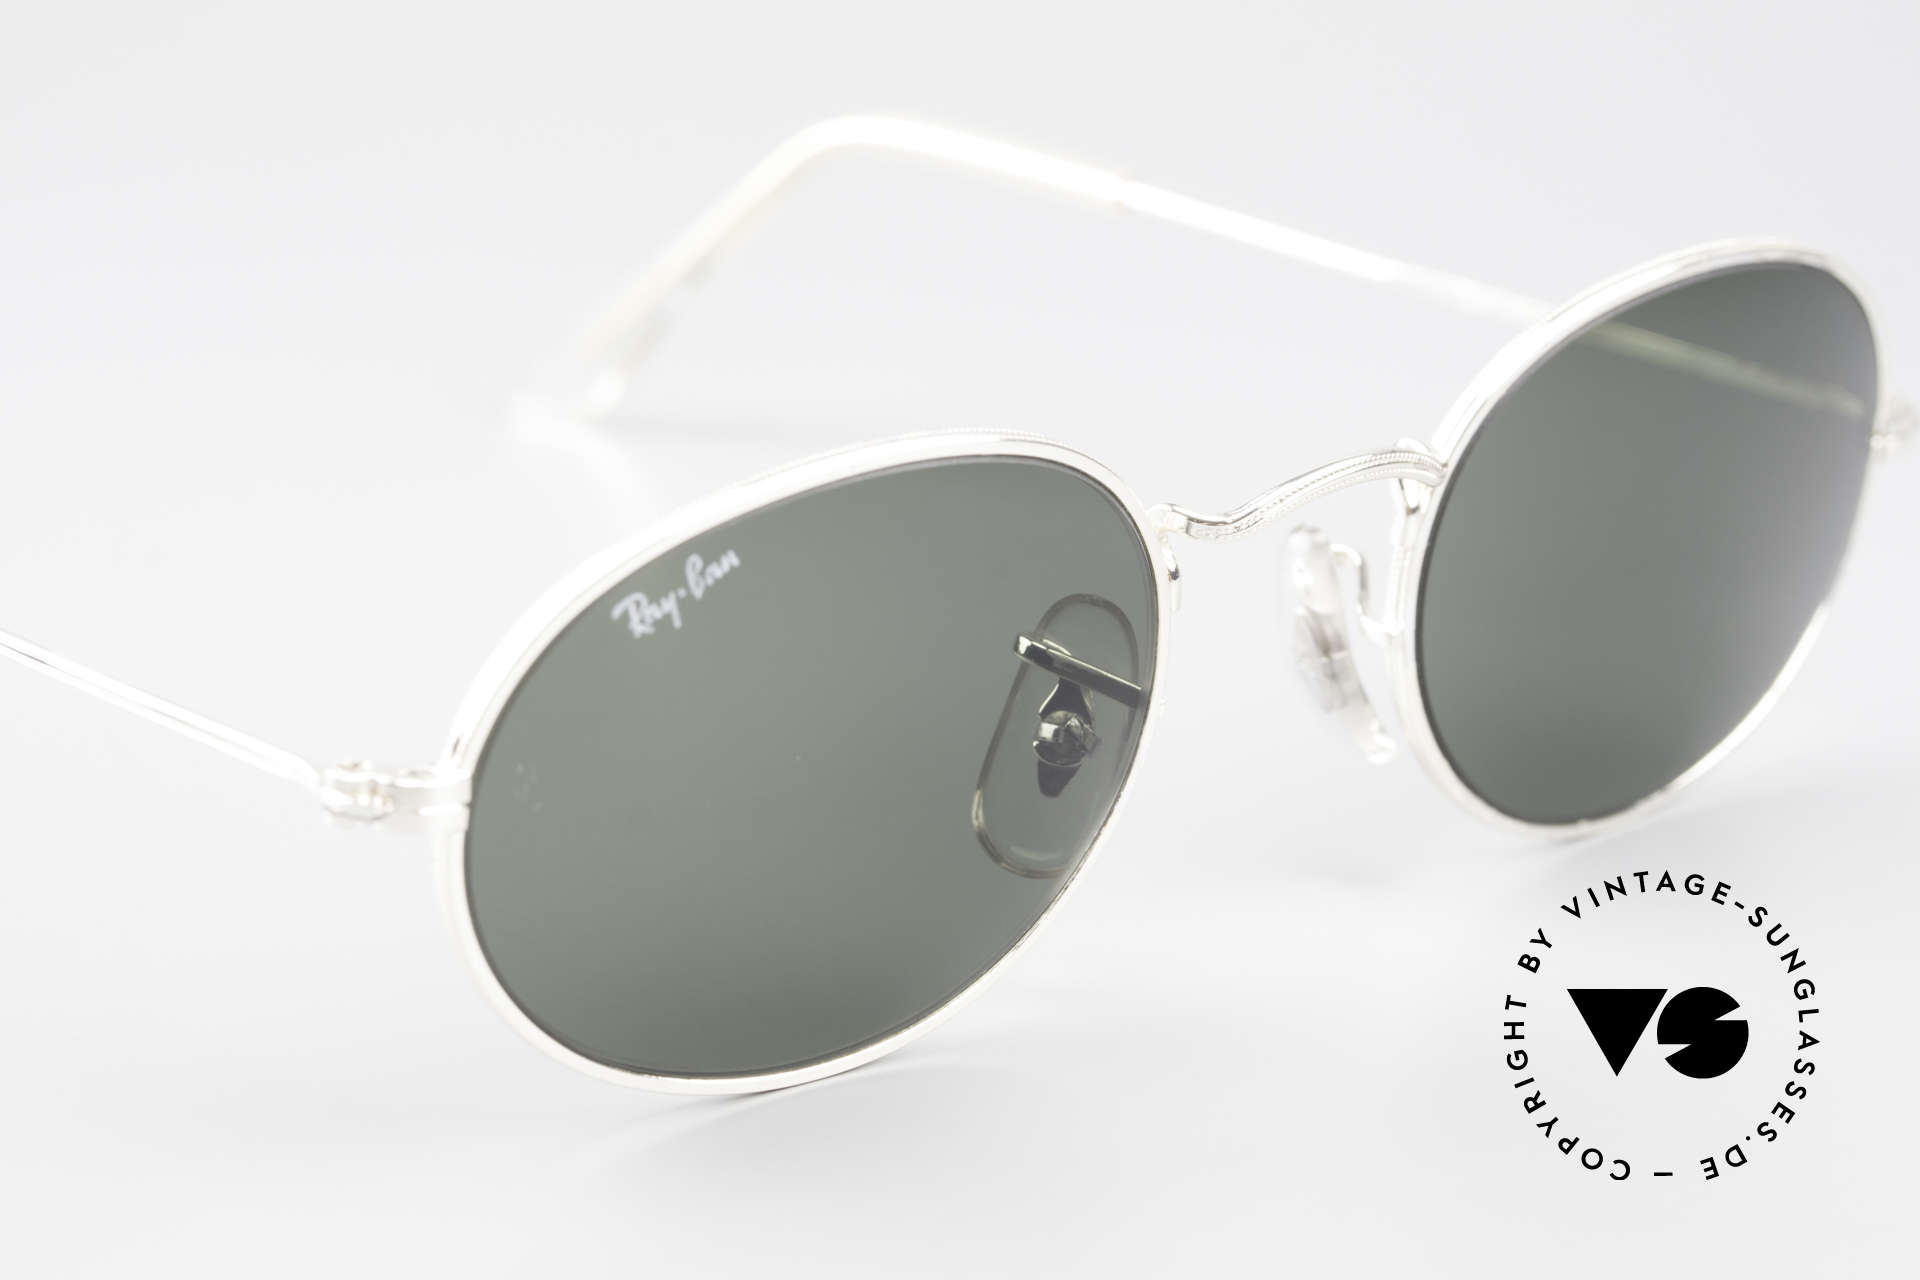 Ray Ban Classic Style I Old Oval B&L USA Sunglasses, NO retro sunglasses, but a rare old USA original, Made for Men and Women